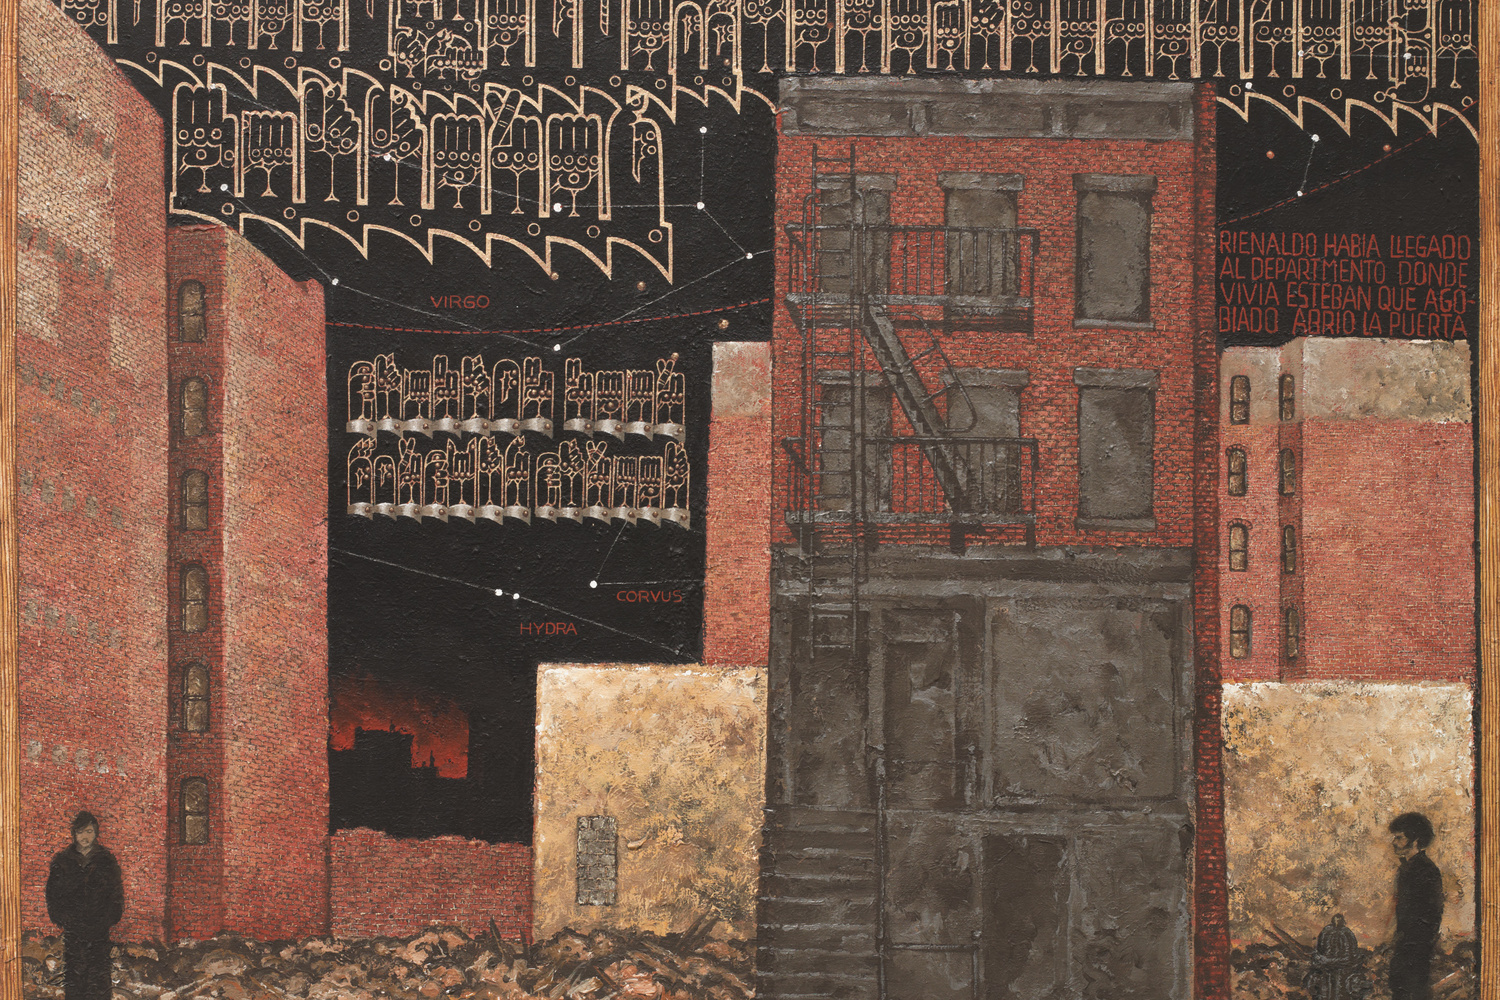 "Martin Wong. Stanton near Forsyth Street. 1983. Acrylic on canvas, 48 × 64"" (121.9 × 162.6 cm). Gift of the Contemporary Arts Council of The Museum of Modern Art; Steven Johnson and Walter Sudol; and James Keith Brown and Eric Diefenbach. Courtesy of the Estate of Martin Wong and P.P.O.W Gallery, New York, NY"